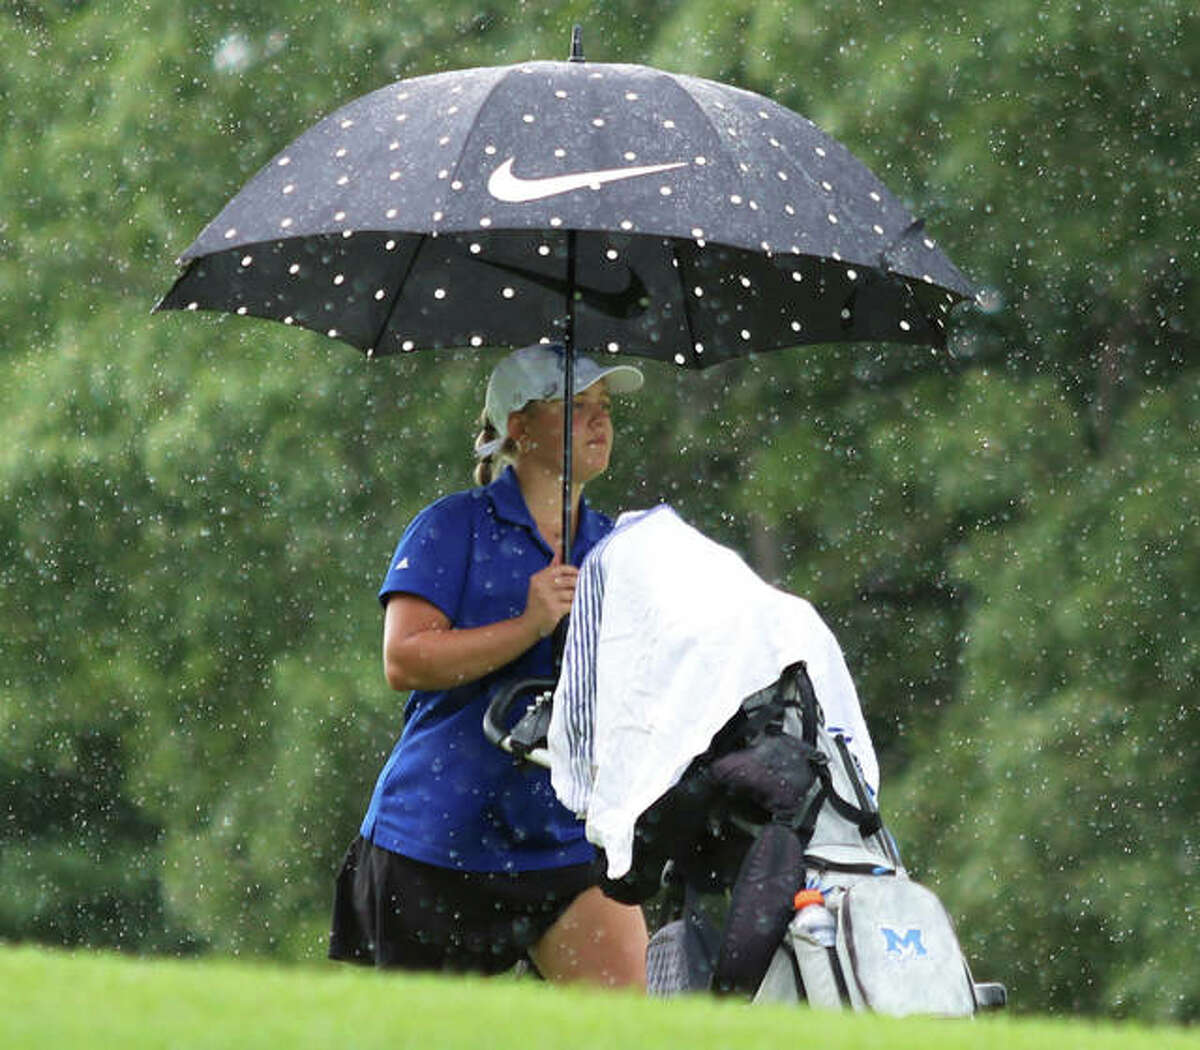 Marquette Catholic senior Audrey Cain walks up the fairway on hole No. 10 as rain falls after the second shot of her round Saturday at the Marquette Blast Off Tournament at Spencer T. Olin golf course in Alton.